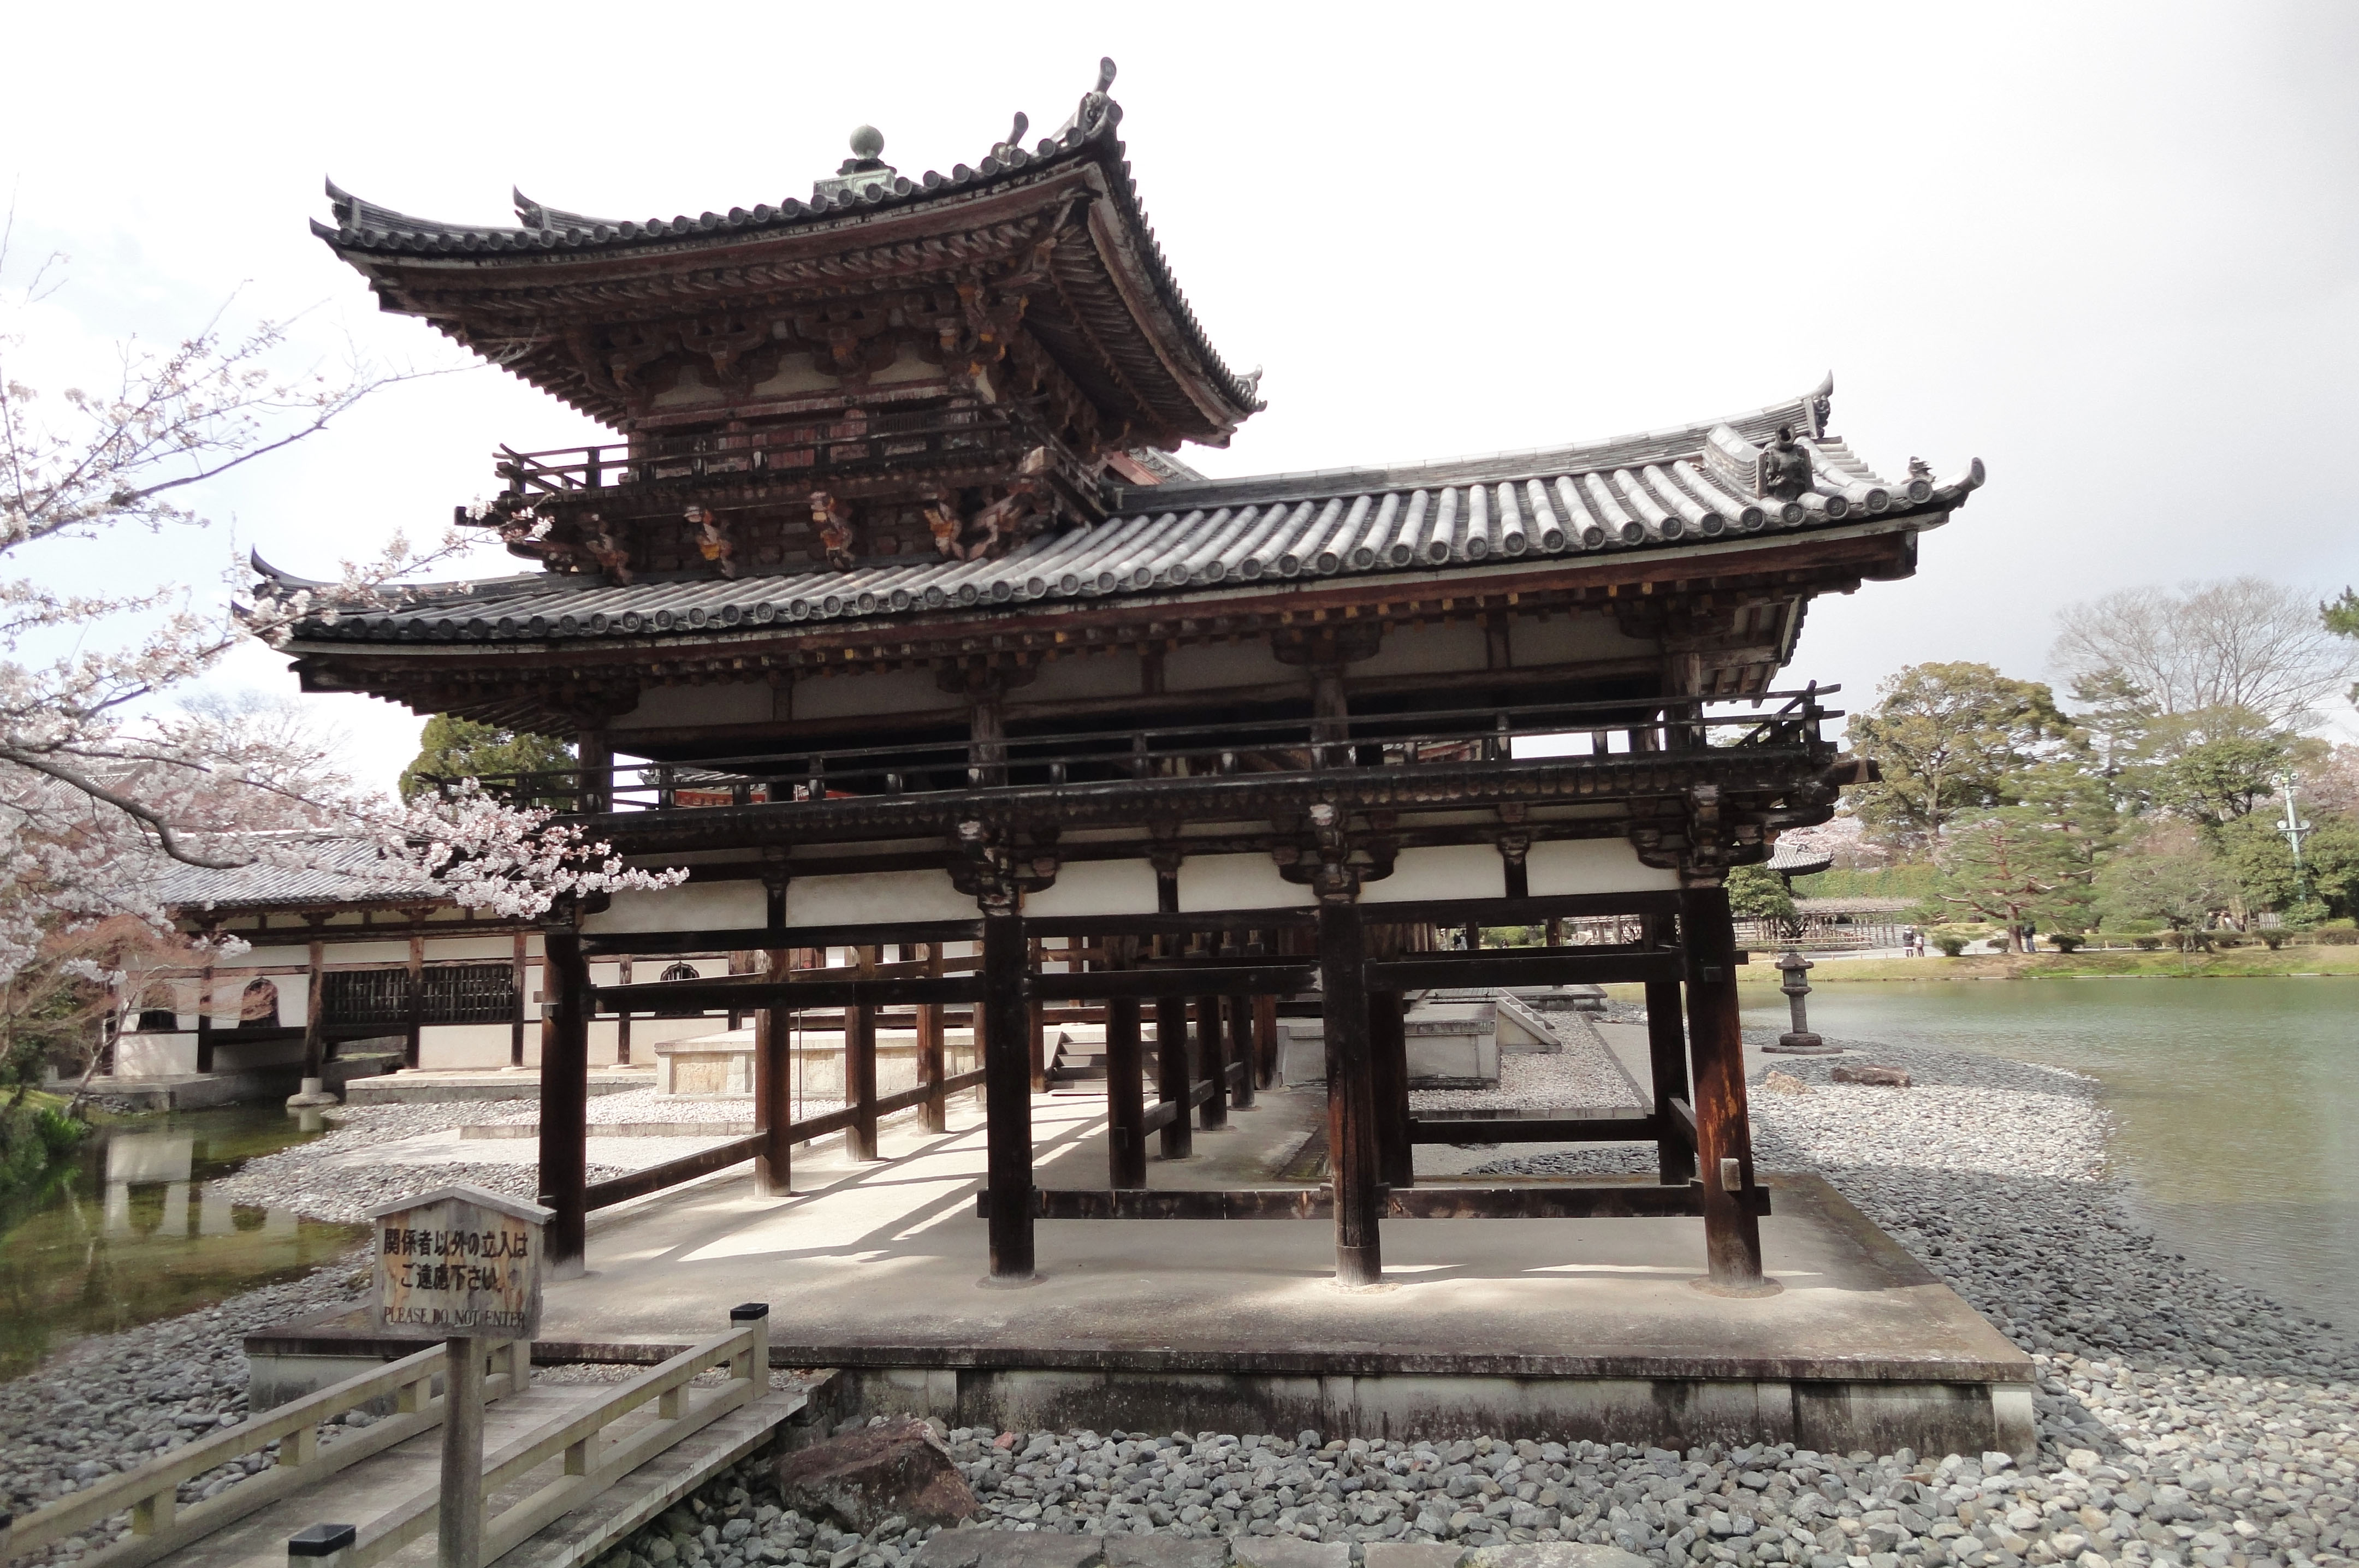 Byodo in Buddhist temple right side entrance Phoenix Hall Kyoto Japan 03